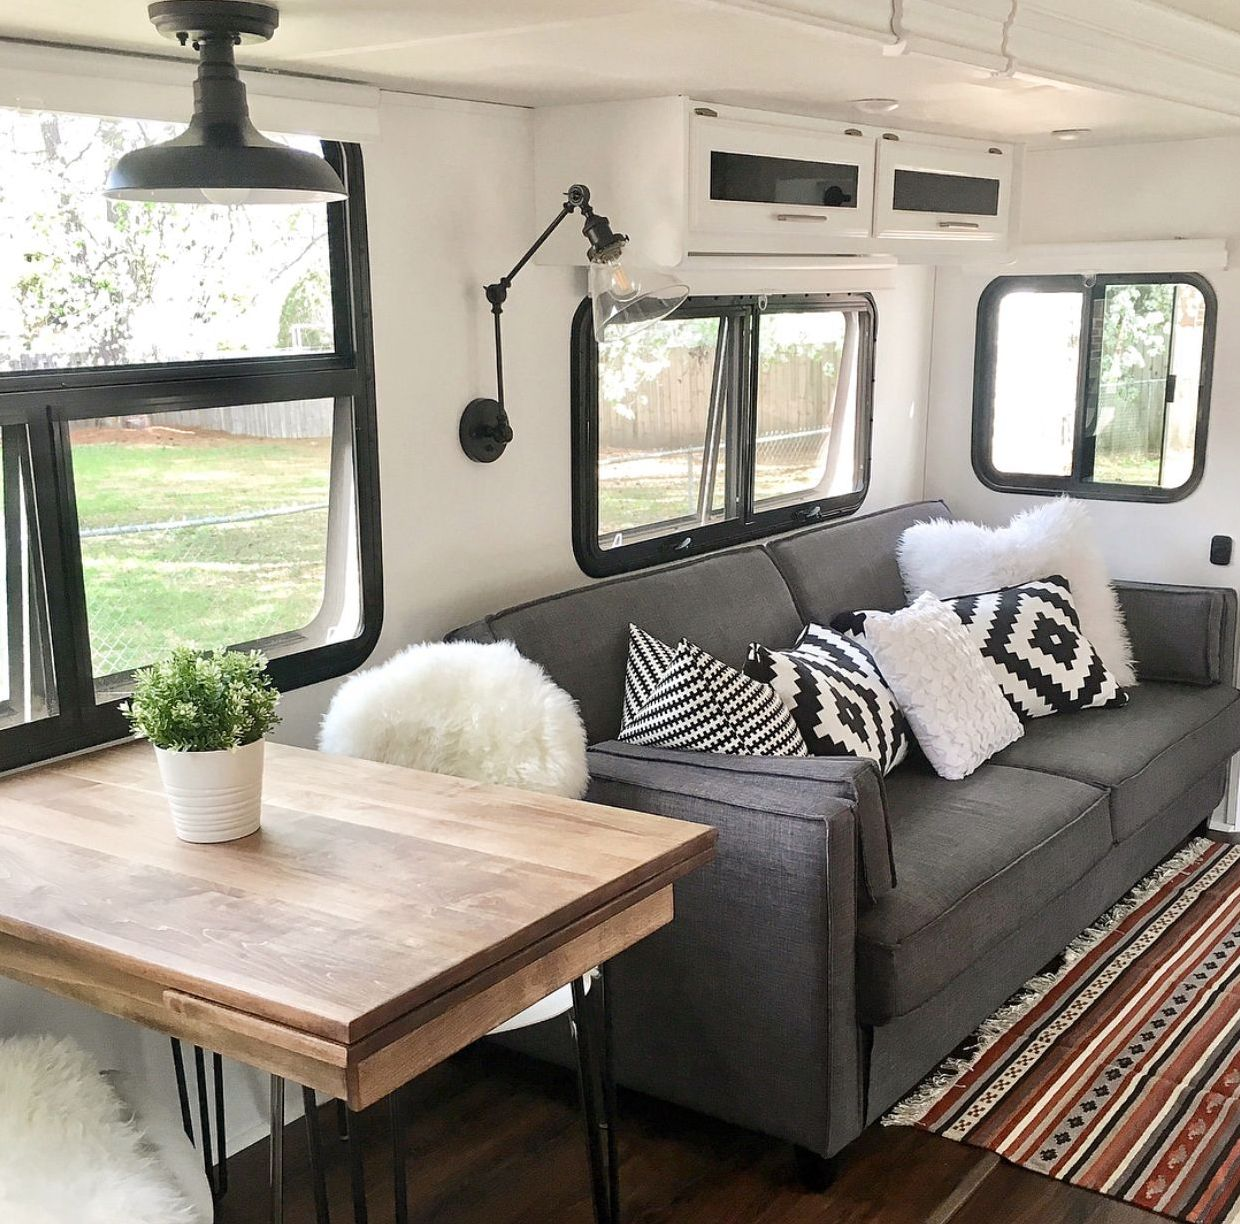 13 Camper Remodel Ideas That Will Inspire You